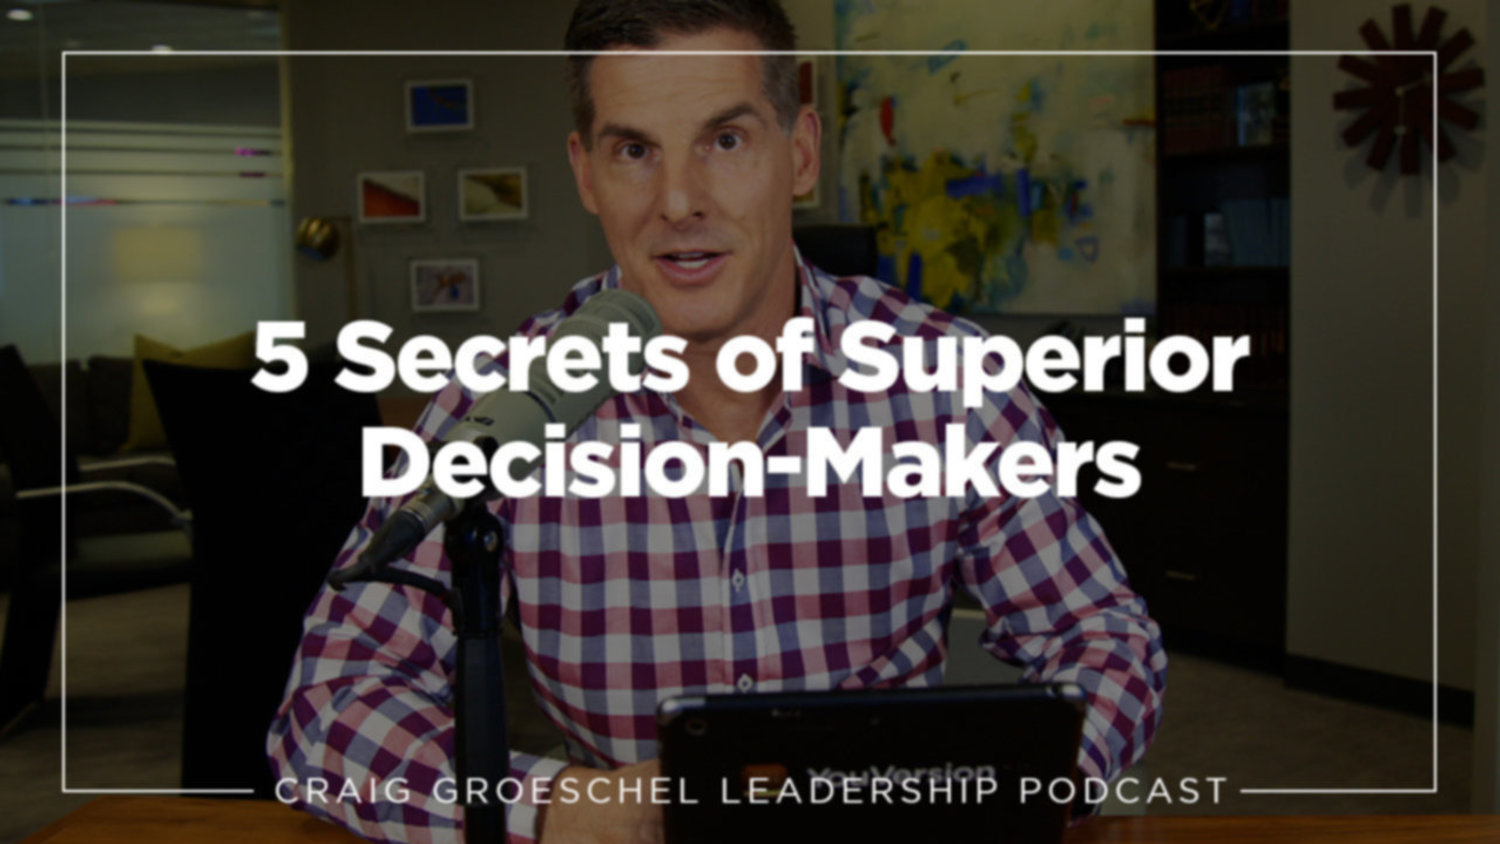 5 Secrets Of Superior Decision-Makers